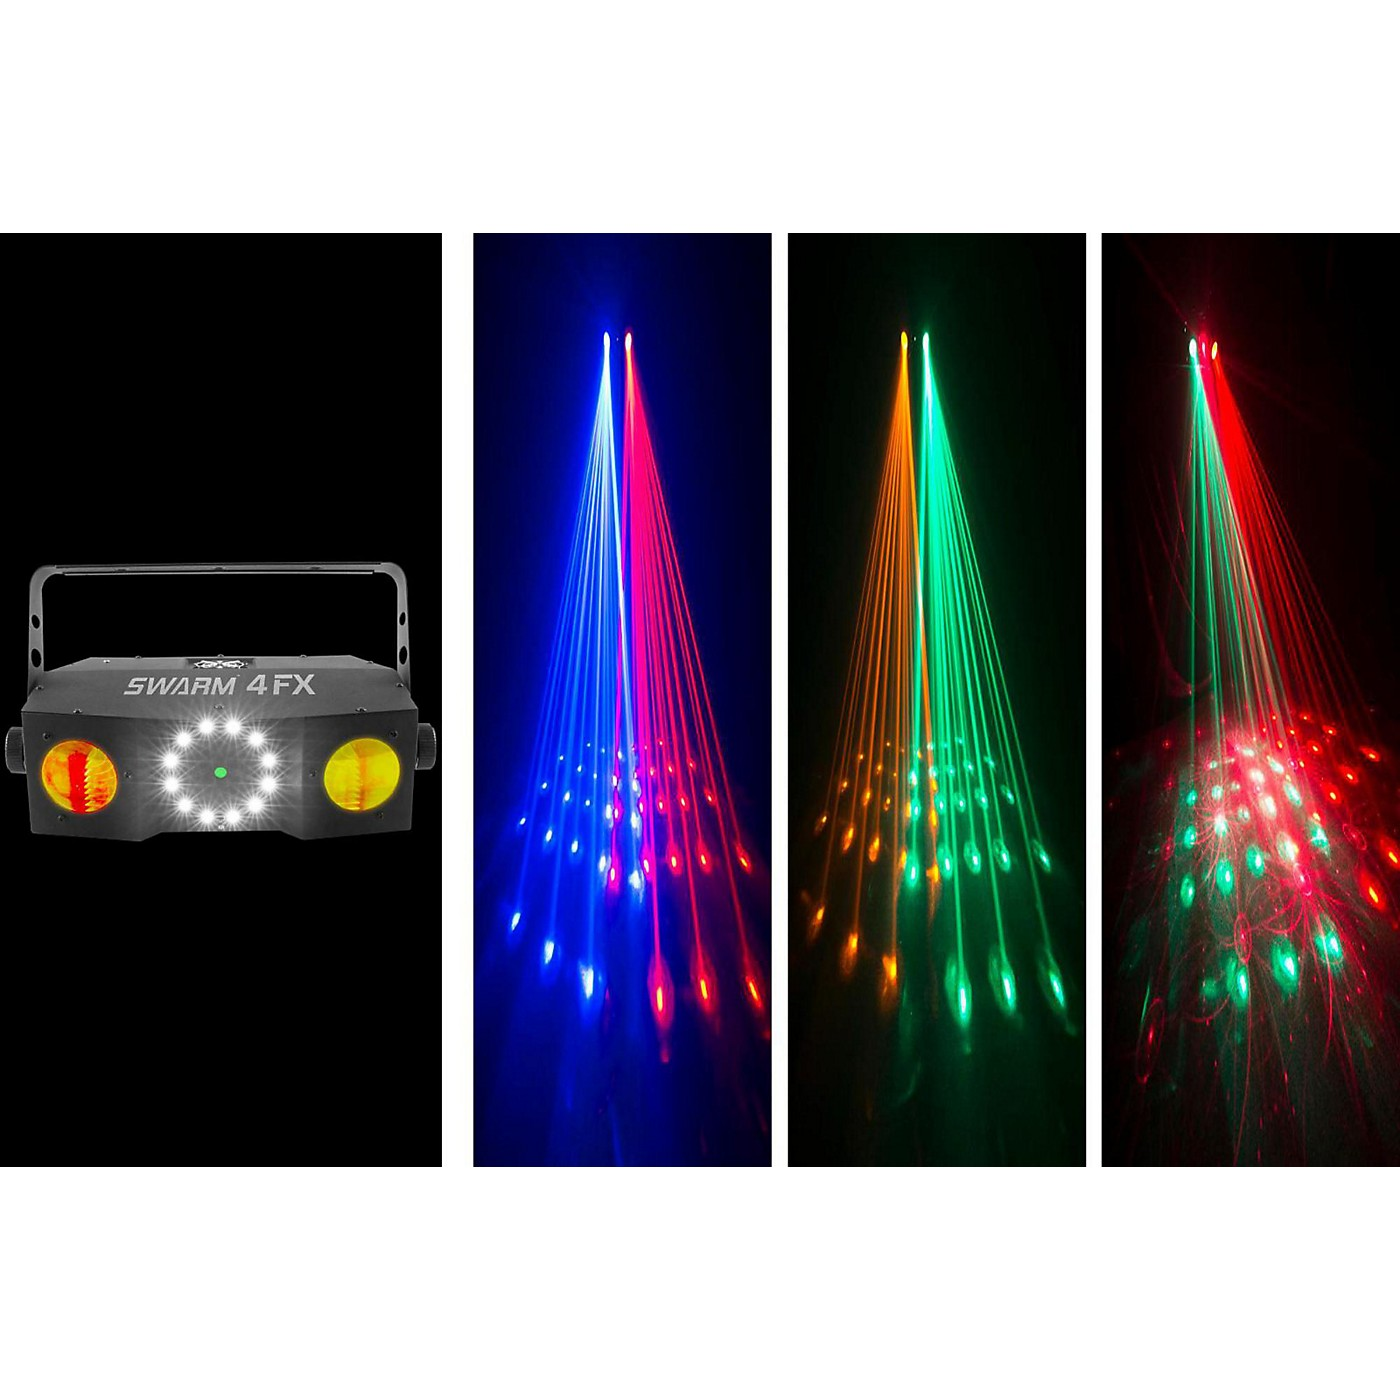 CHAUVET DJ Swarm 4 FX Stage Laser Party Light with LED Wash and Strobe Light Effects thumbnail